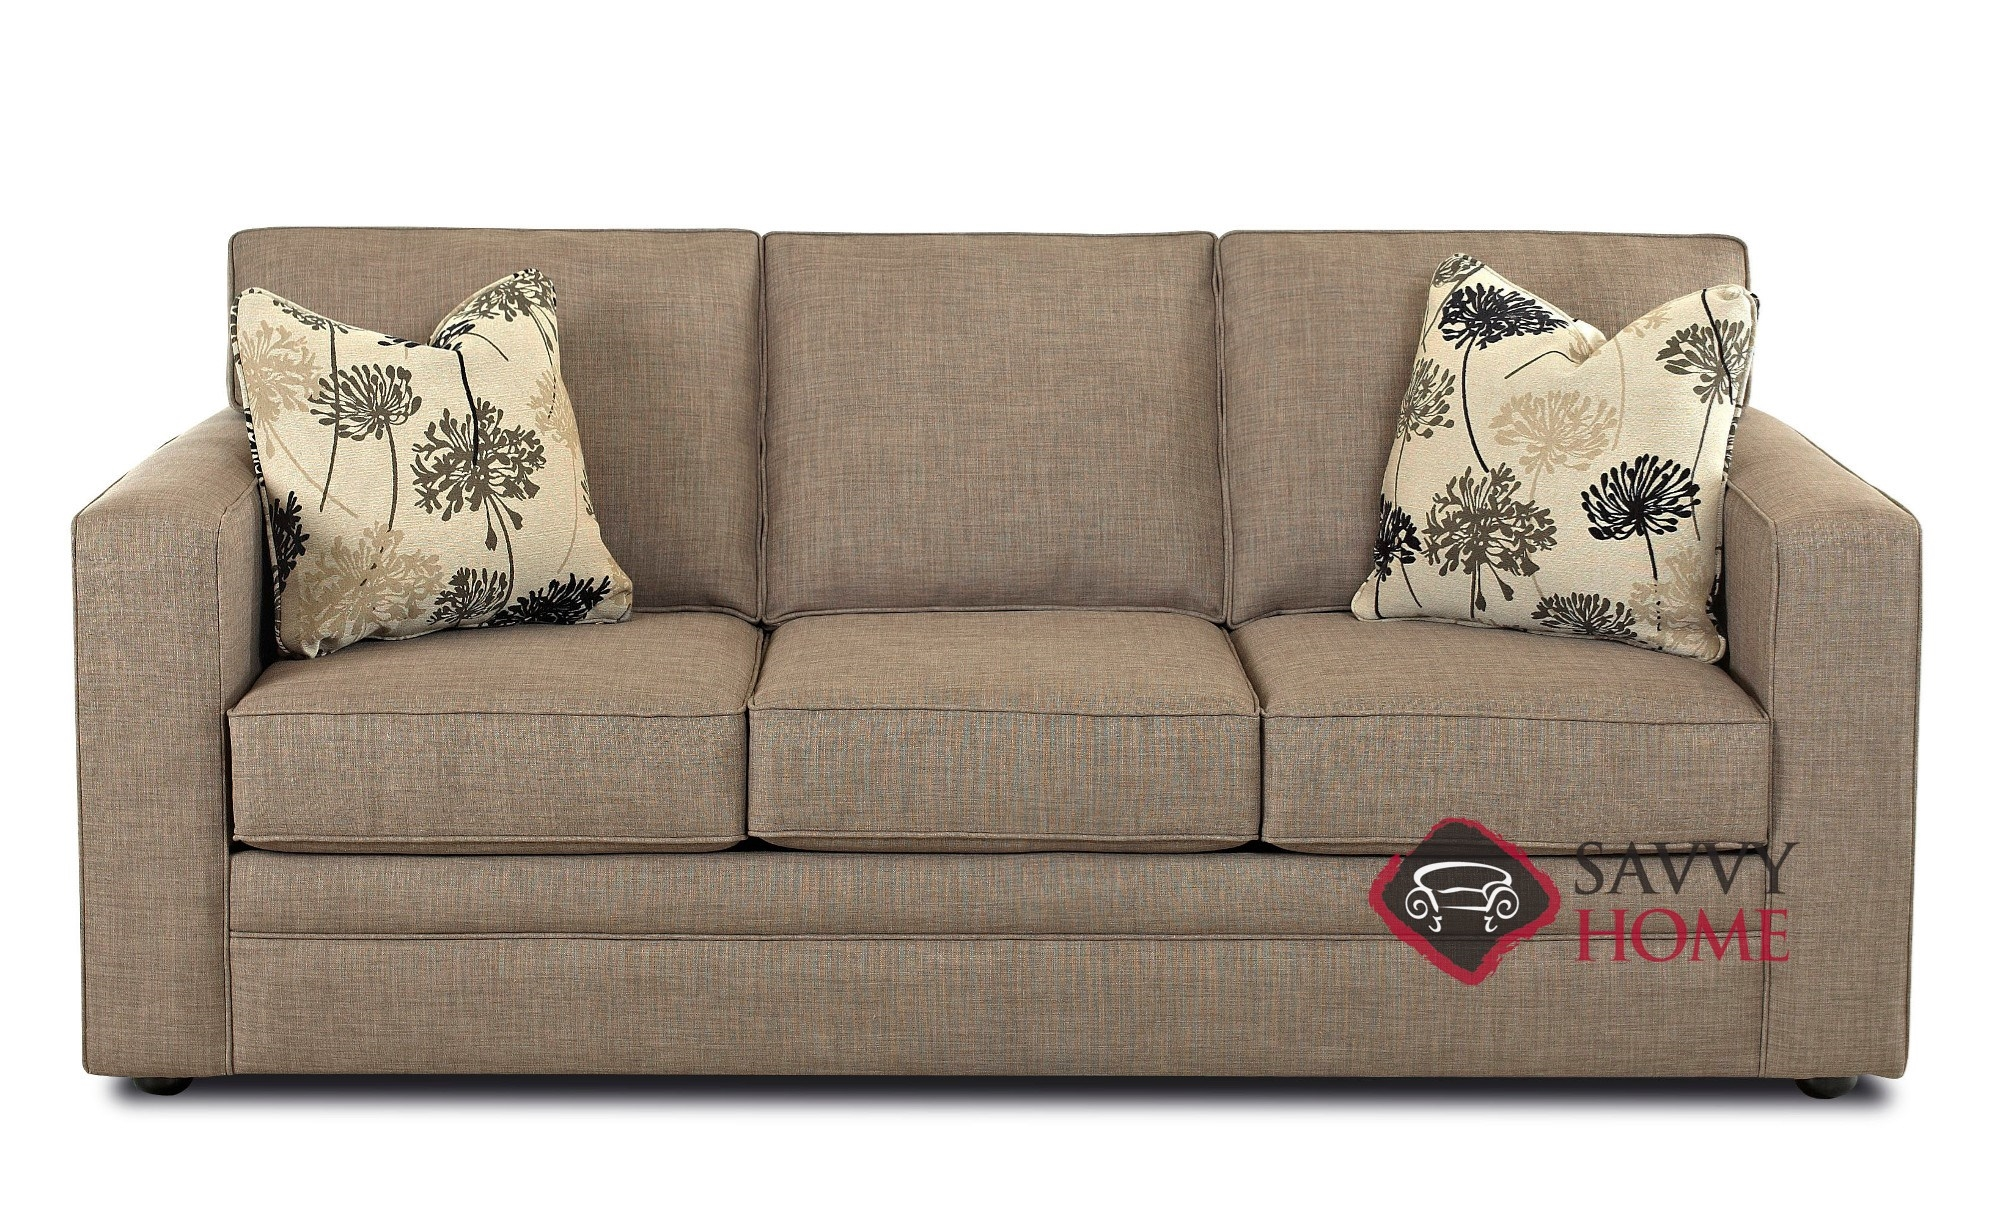 Ordinaire Boston Queen Sleeper Sofa By Savvy